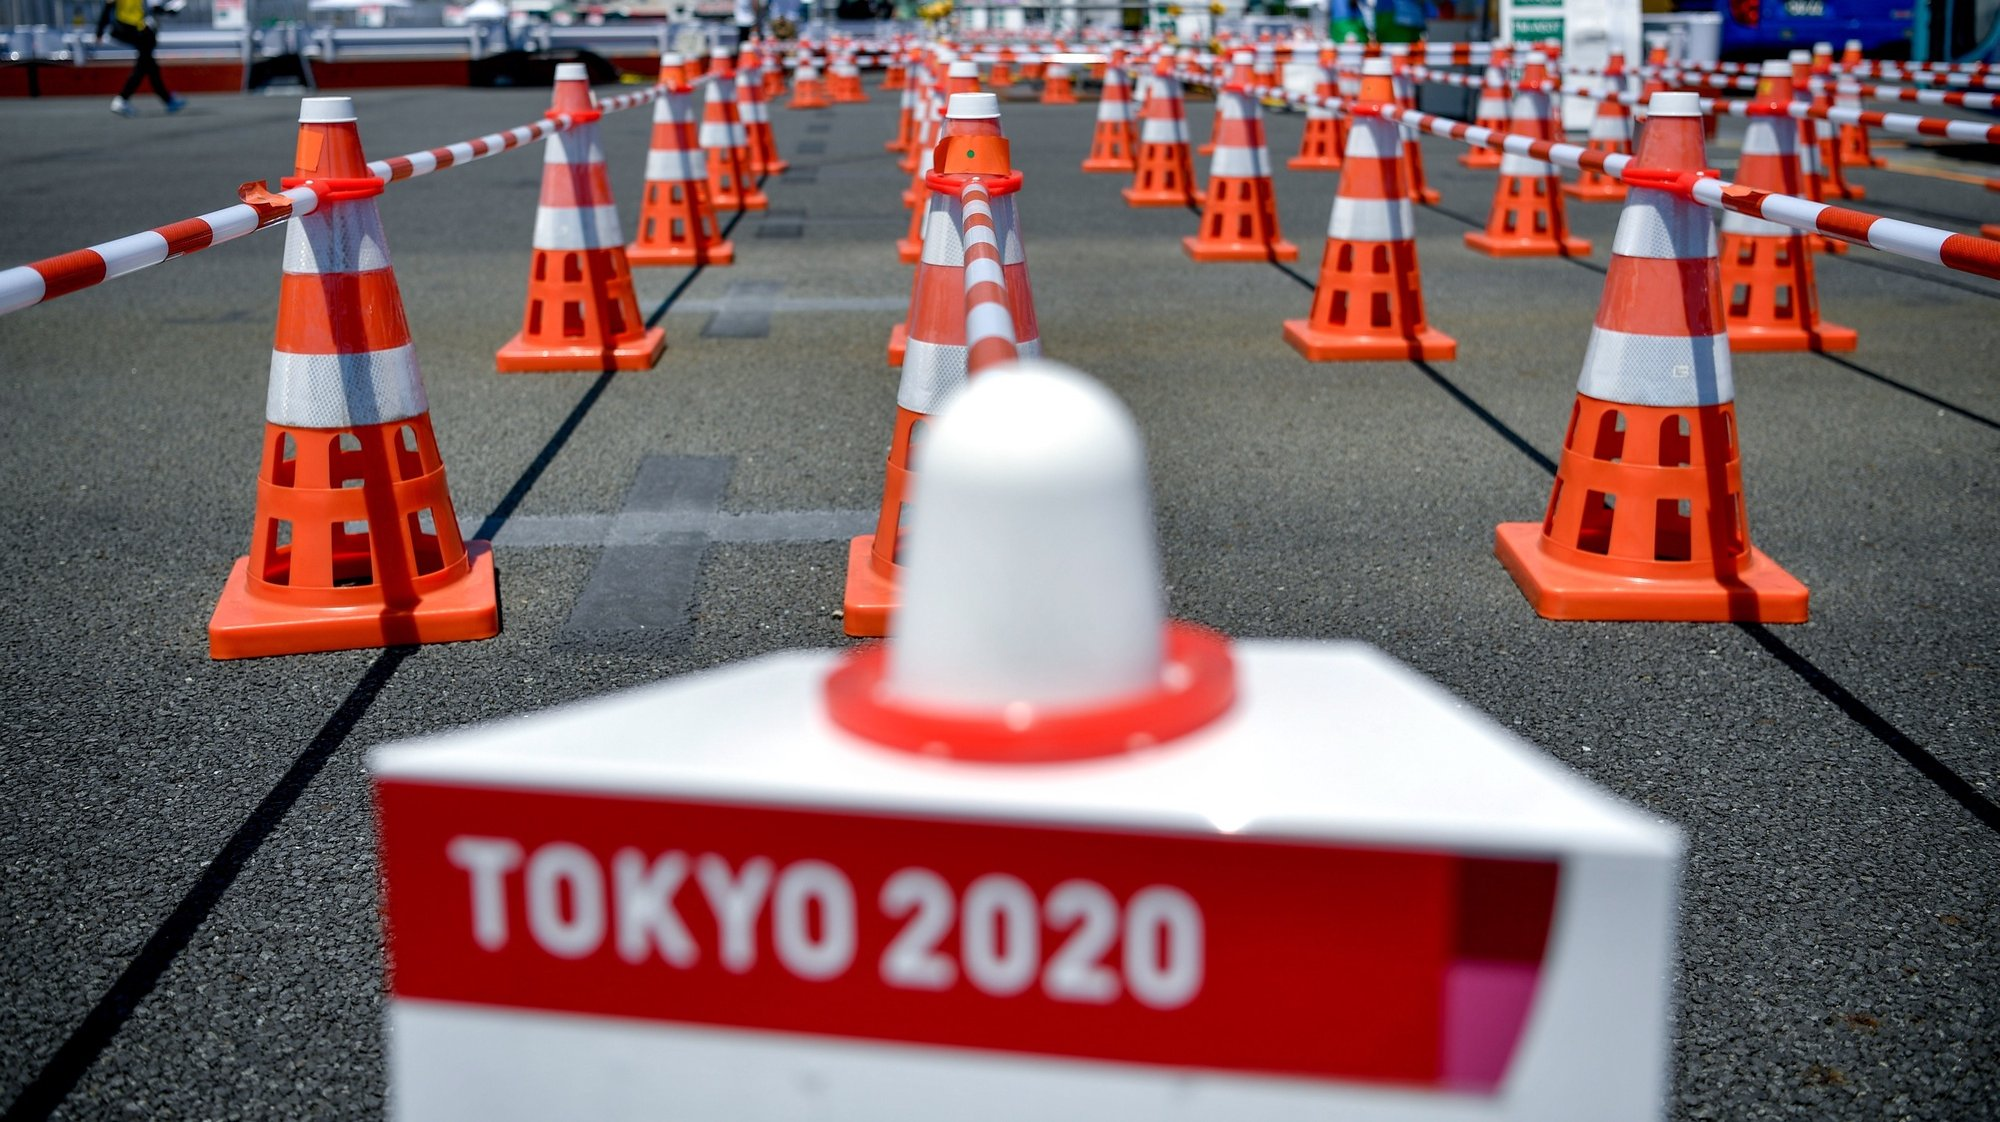 epa09356044 A view of the Olympic bus station in Tokyo, Japan, 21 July 2021. The pandemic-delayed 2020 Summer Olympics are schedule to open on July 23 with spectators banned from most Olympic events due to COVID-19 surge.  EPA/Zsolt Czegledi HUNGARY OUT